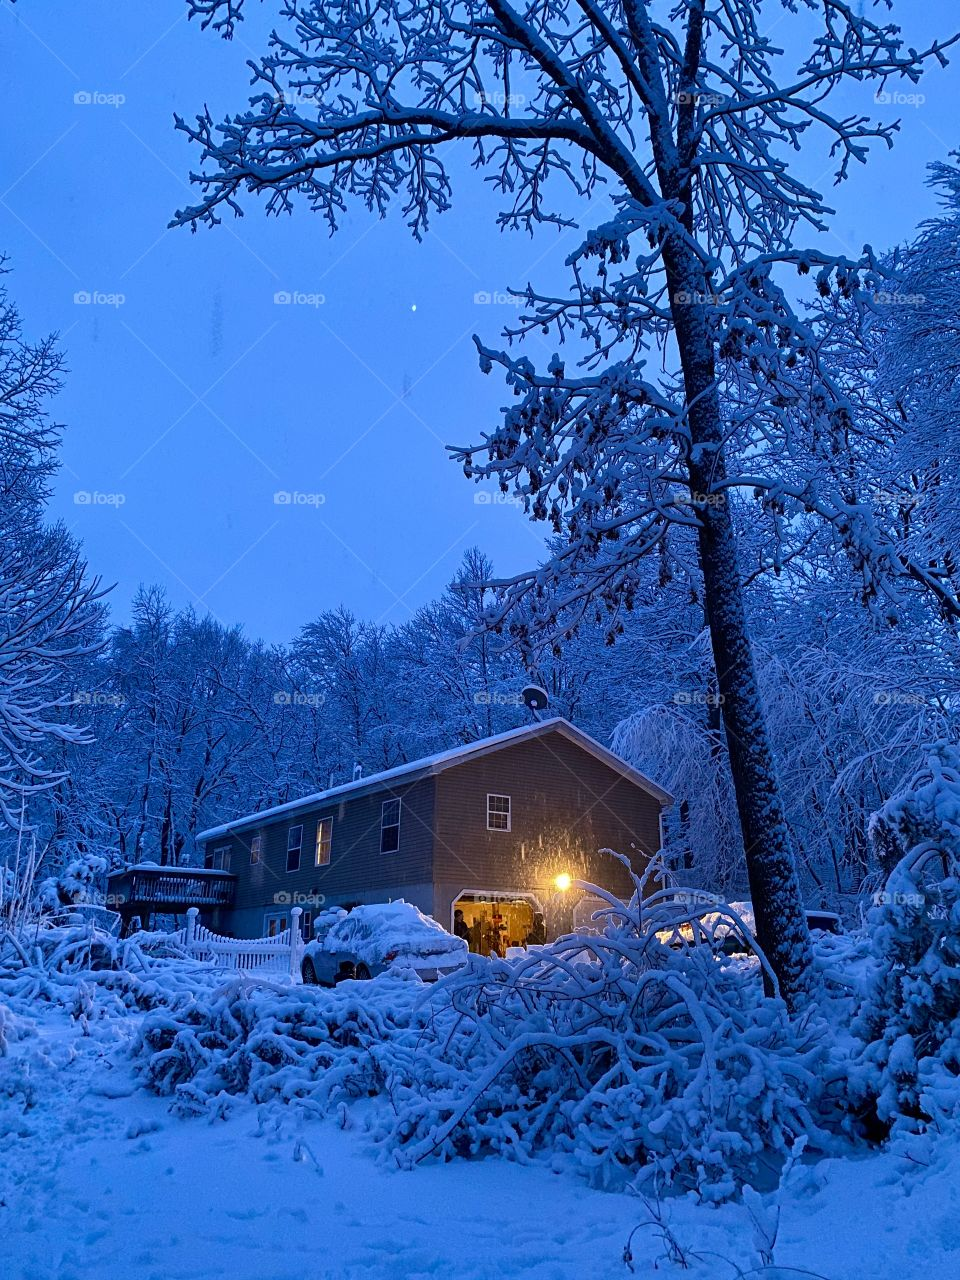 Night during a snow storm in Northeast Pennsylvania USA; A house surrounded by snow covered woods and an open sky with the garage light on.